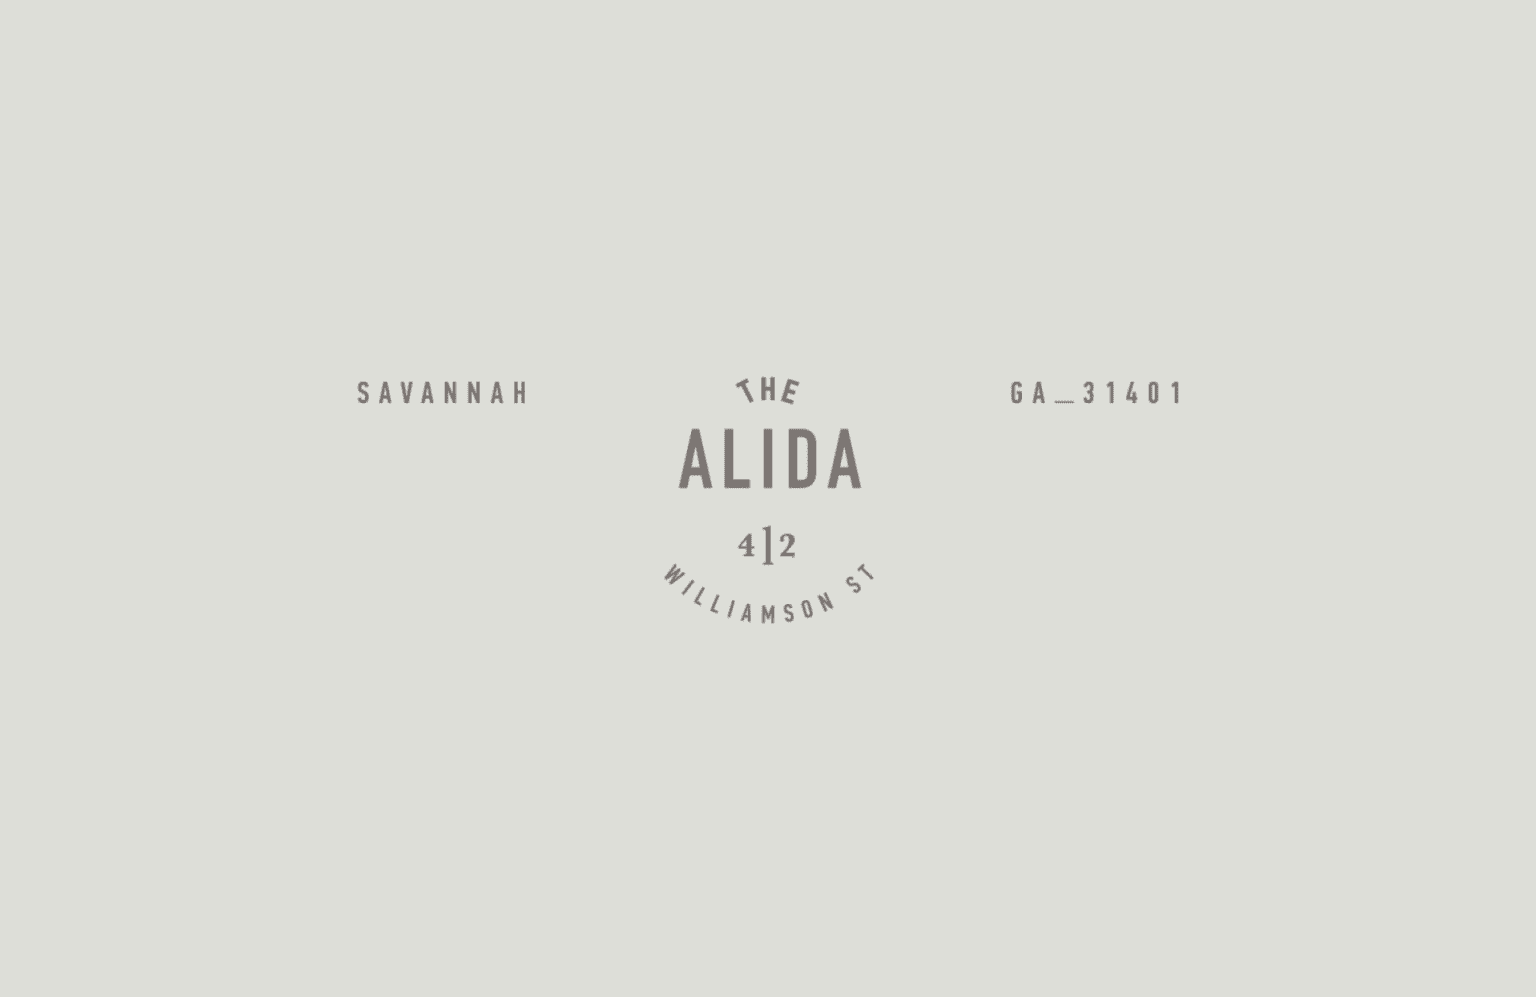 The Alida: Embodying Southern Hospitality